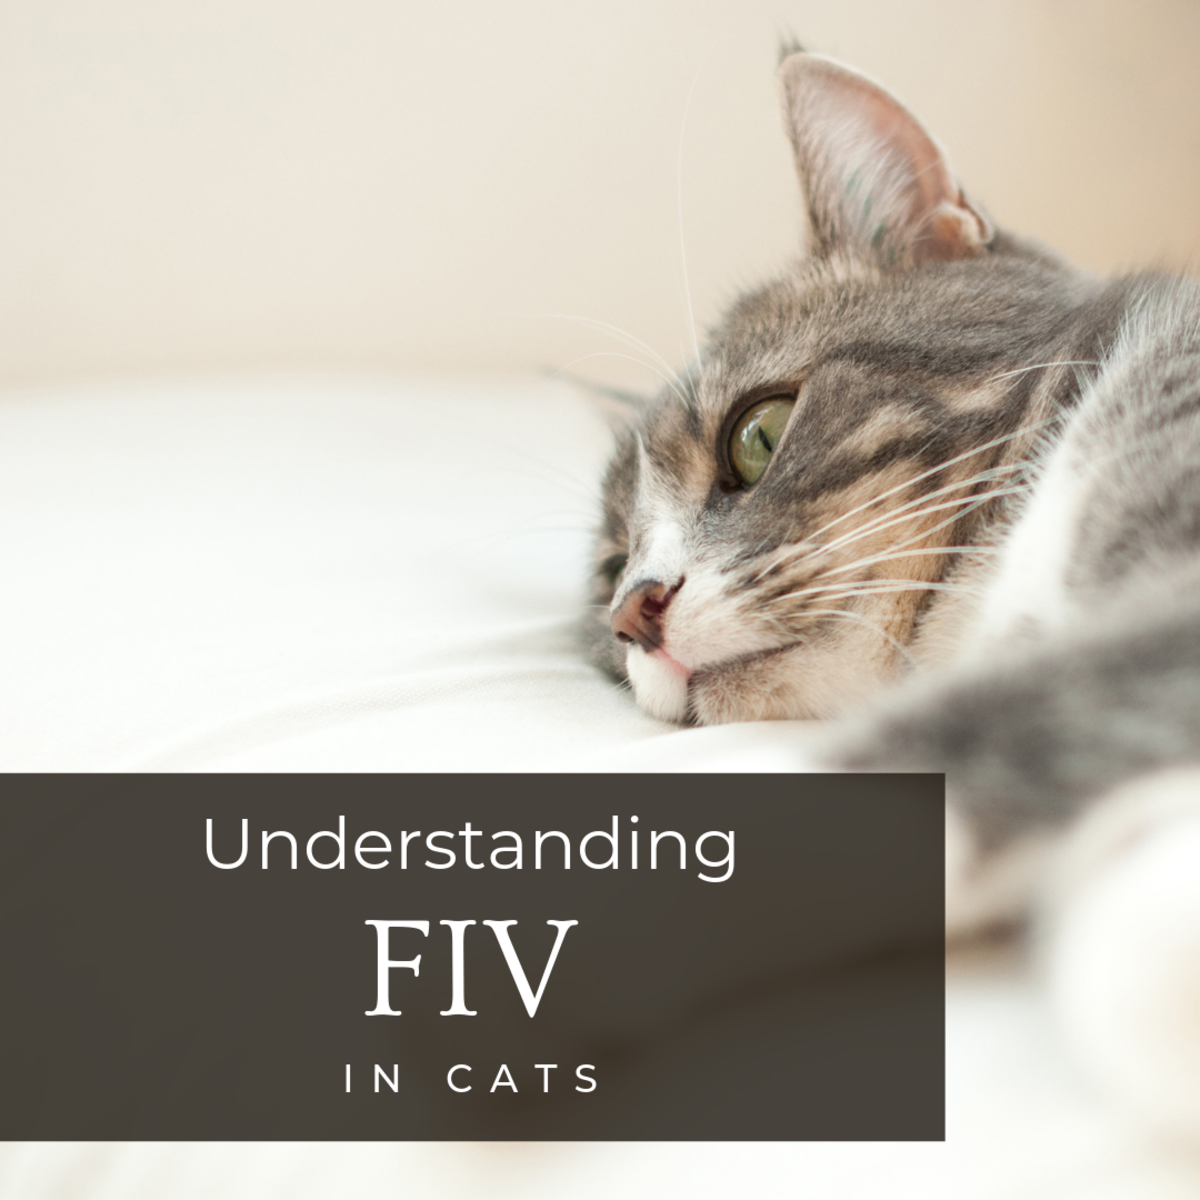 Feline Immunodeficiency Virus (FIV) in Cats